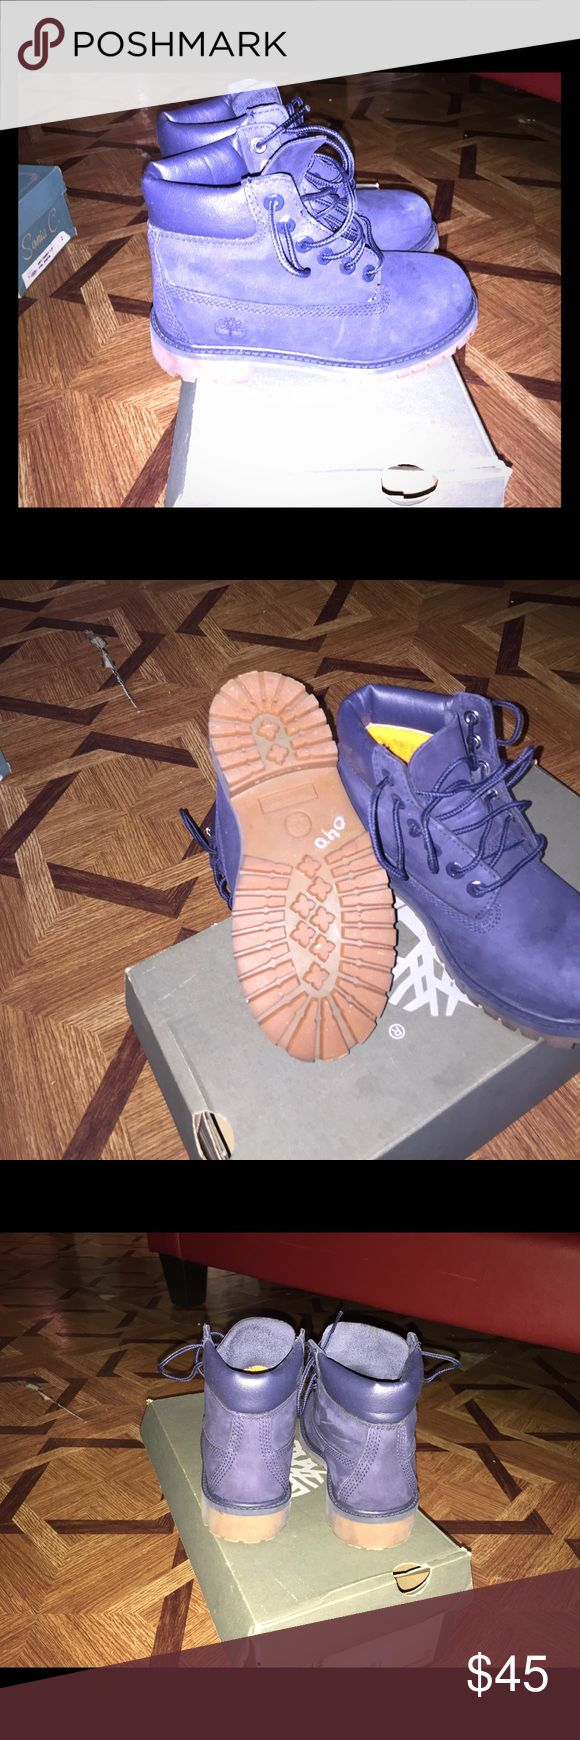 Timberland boots for kids Navy color timberland great for girls and boys didn't fit my daughter Timberland Shoes Boots